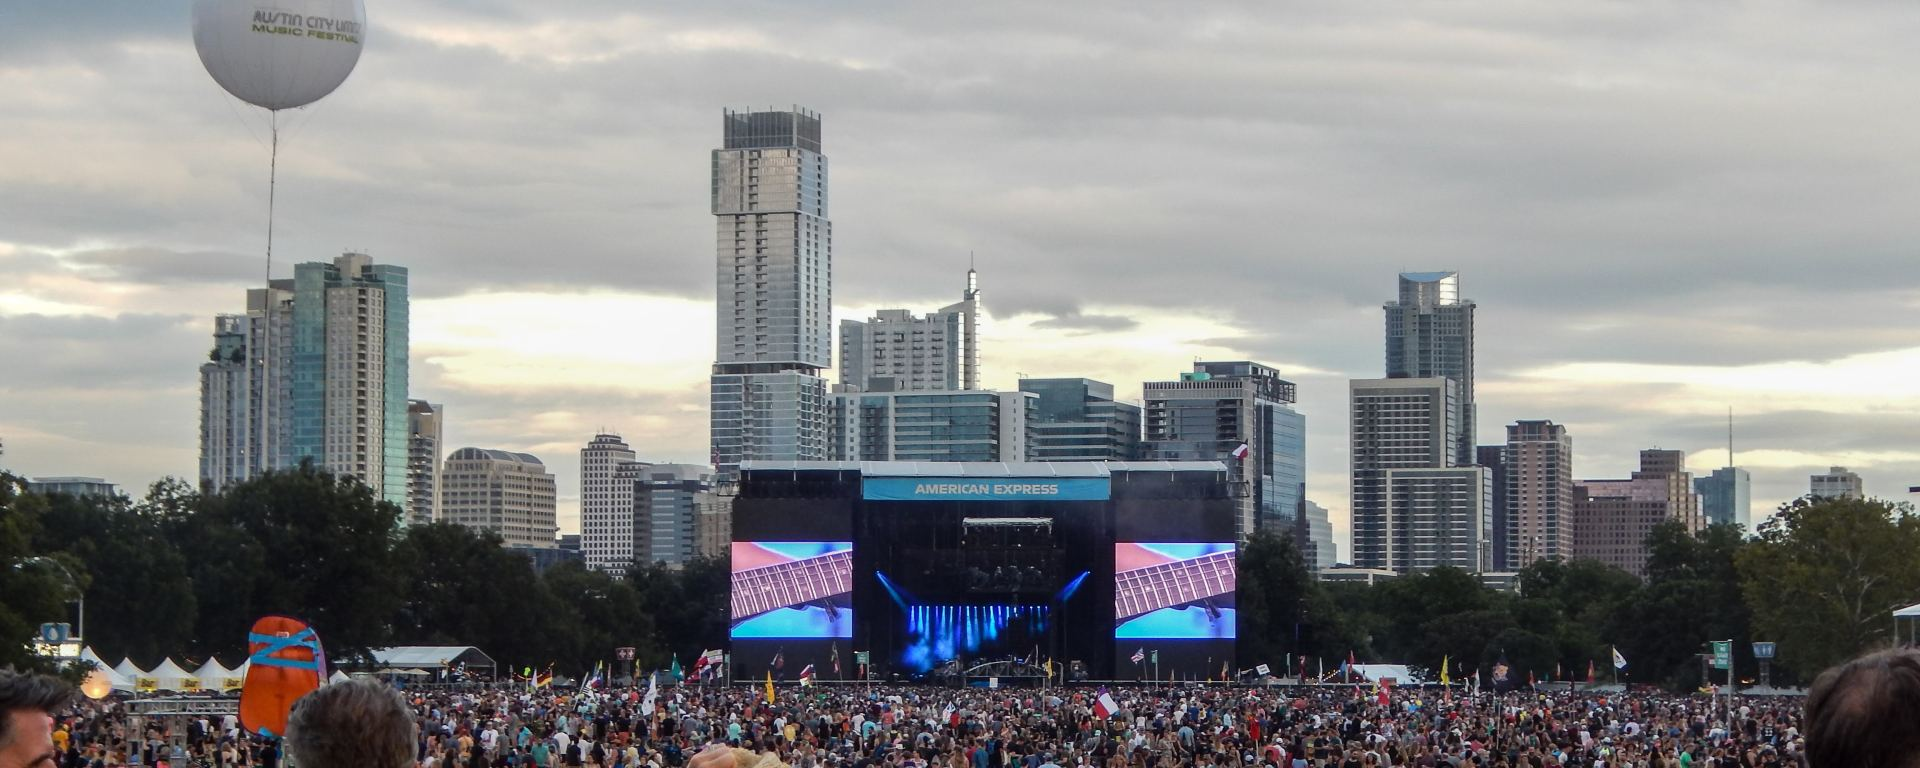 Thousands of people make their way to the biggest stage at Austin City Limits. You can see the Austin skyline behind the stage.